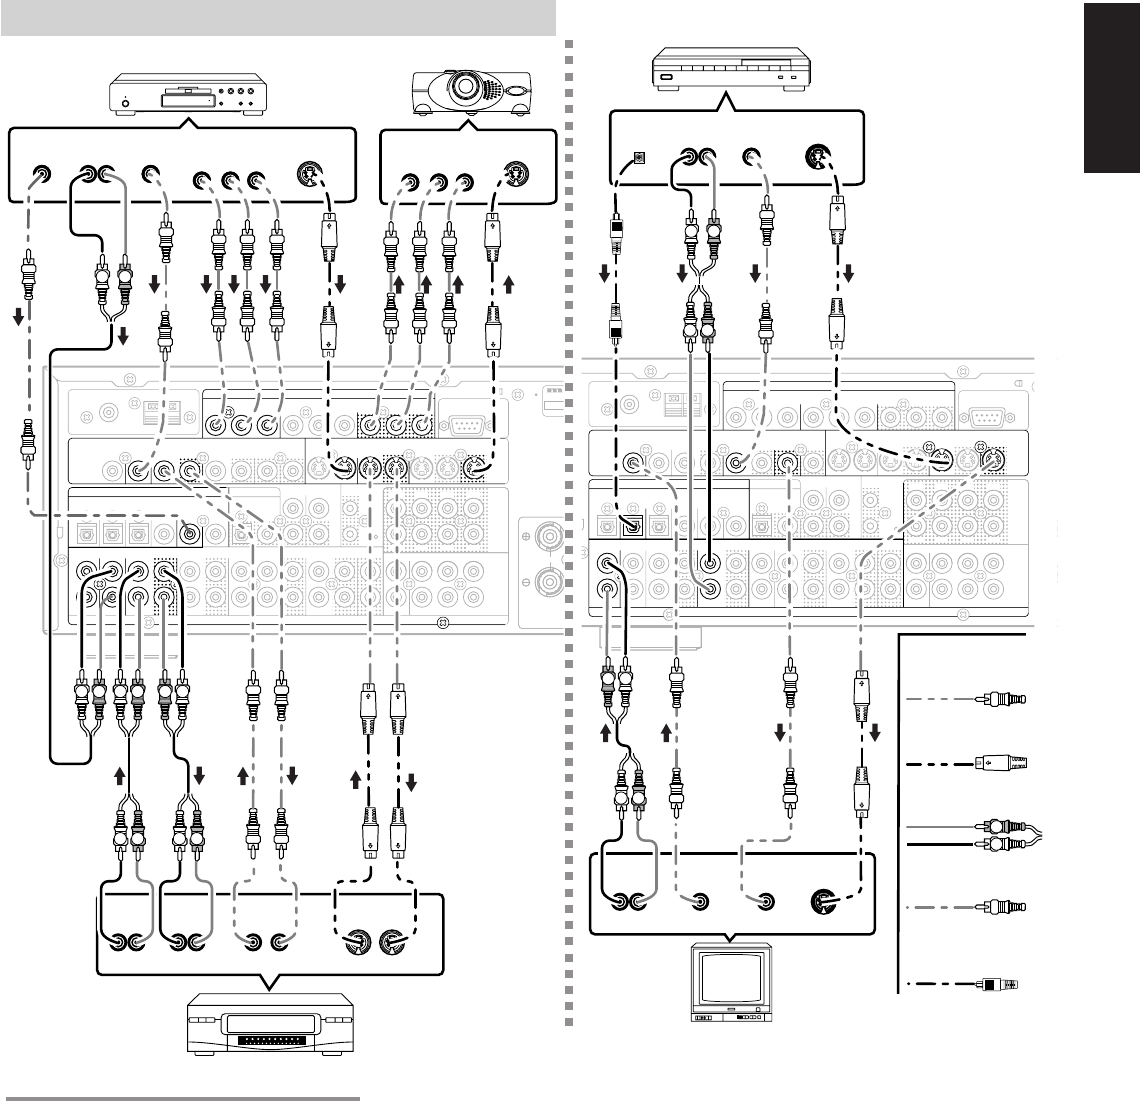 Page 21 of Marantz Stereo Receiver SR7300 User Guide